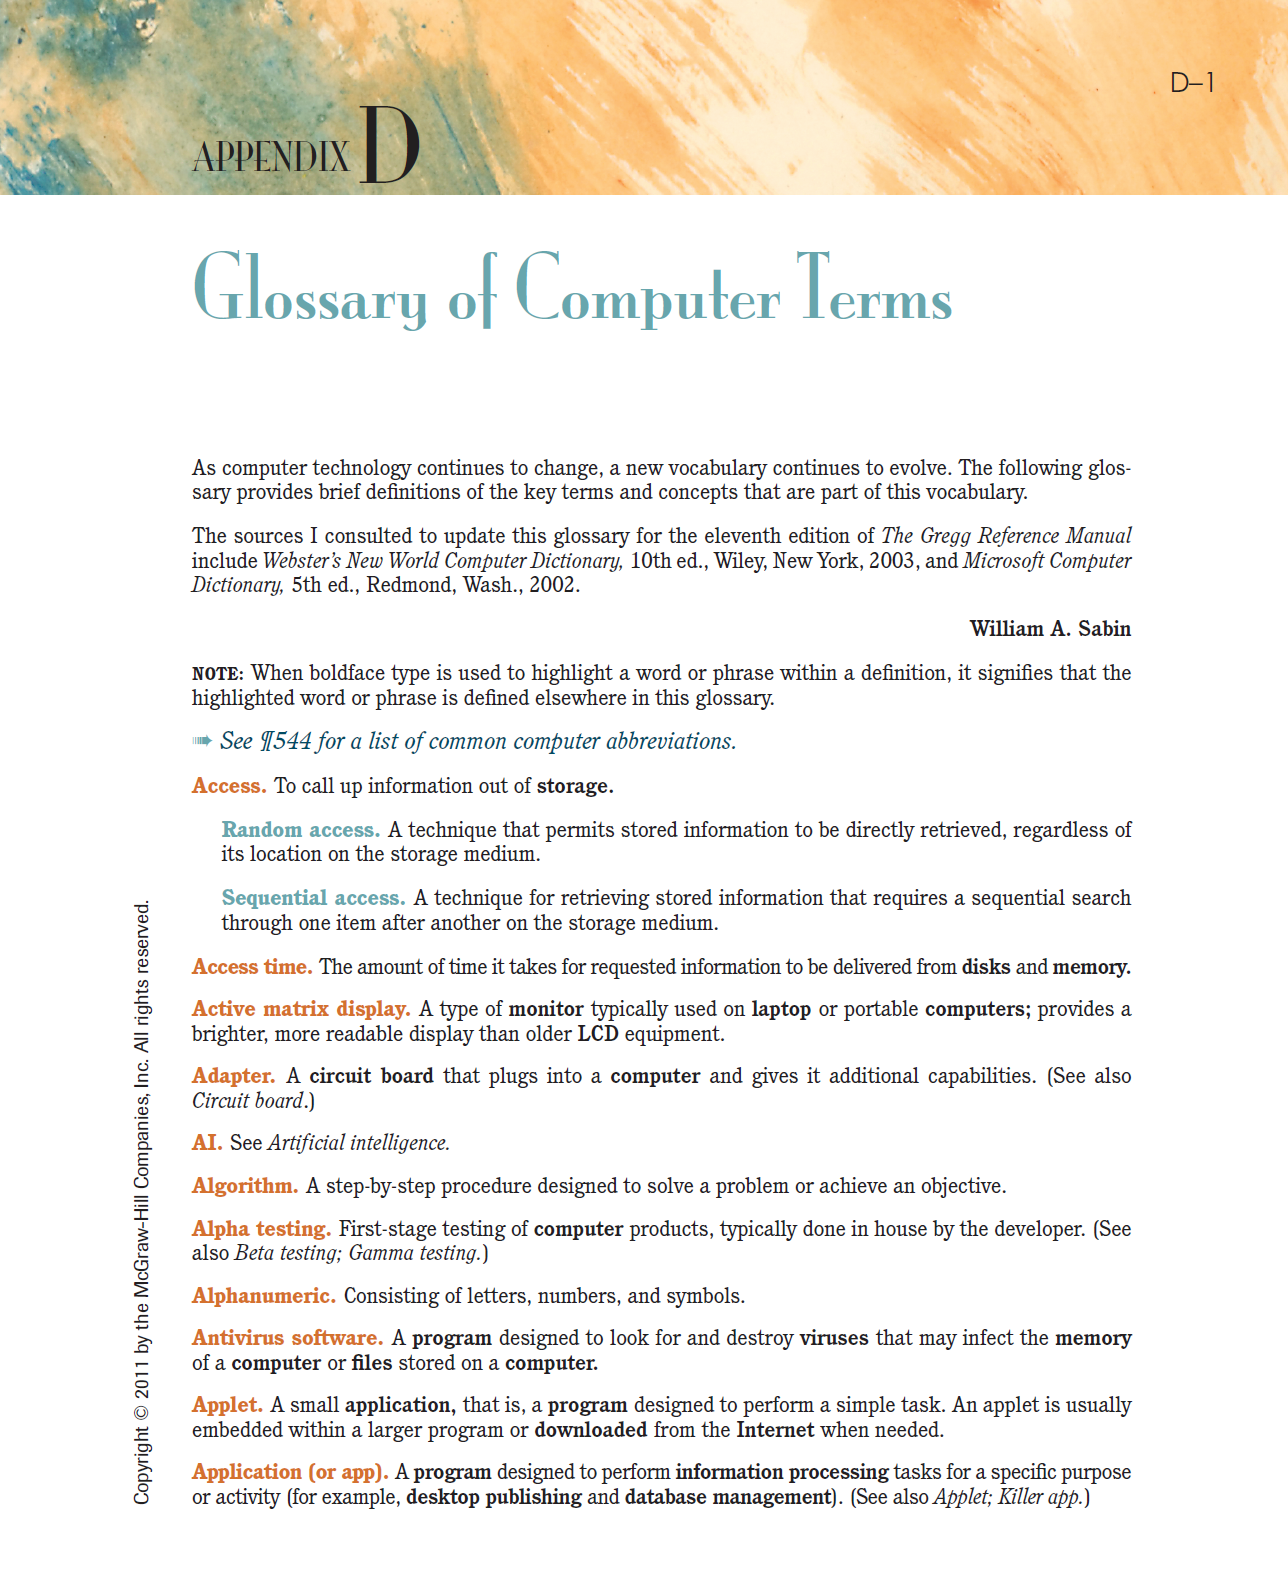 Glossary of Computer terms - Download PDF